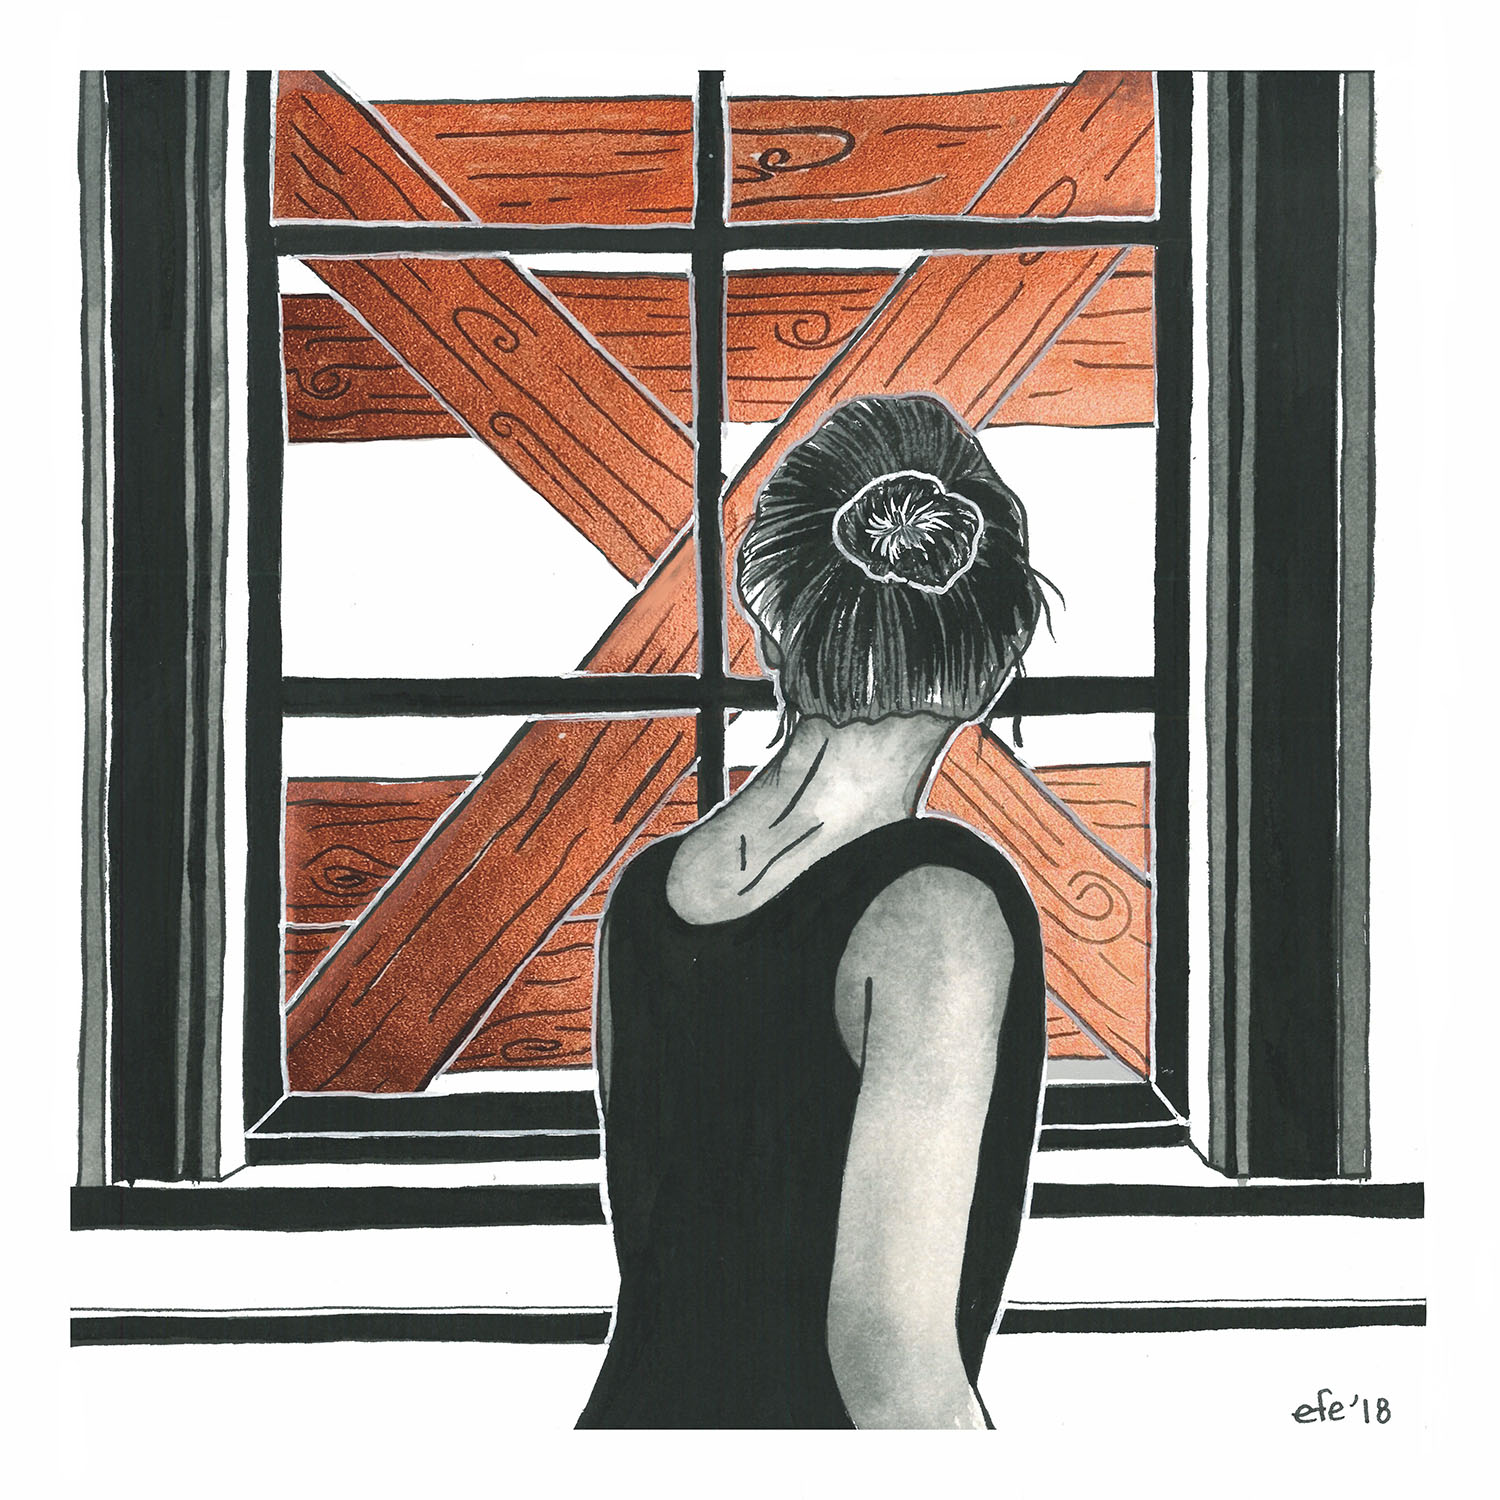 Day 24 - Agoraphobia